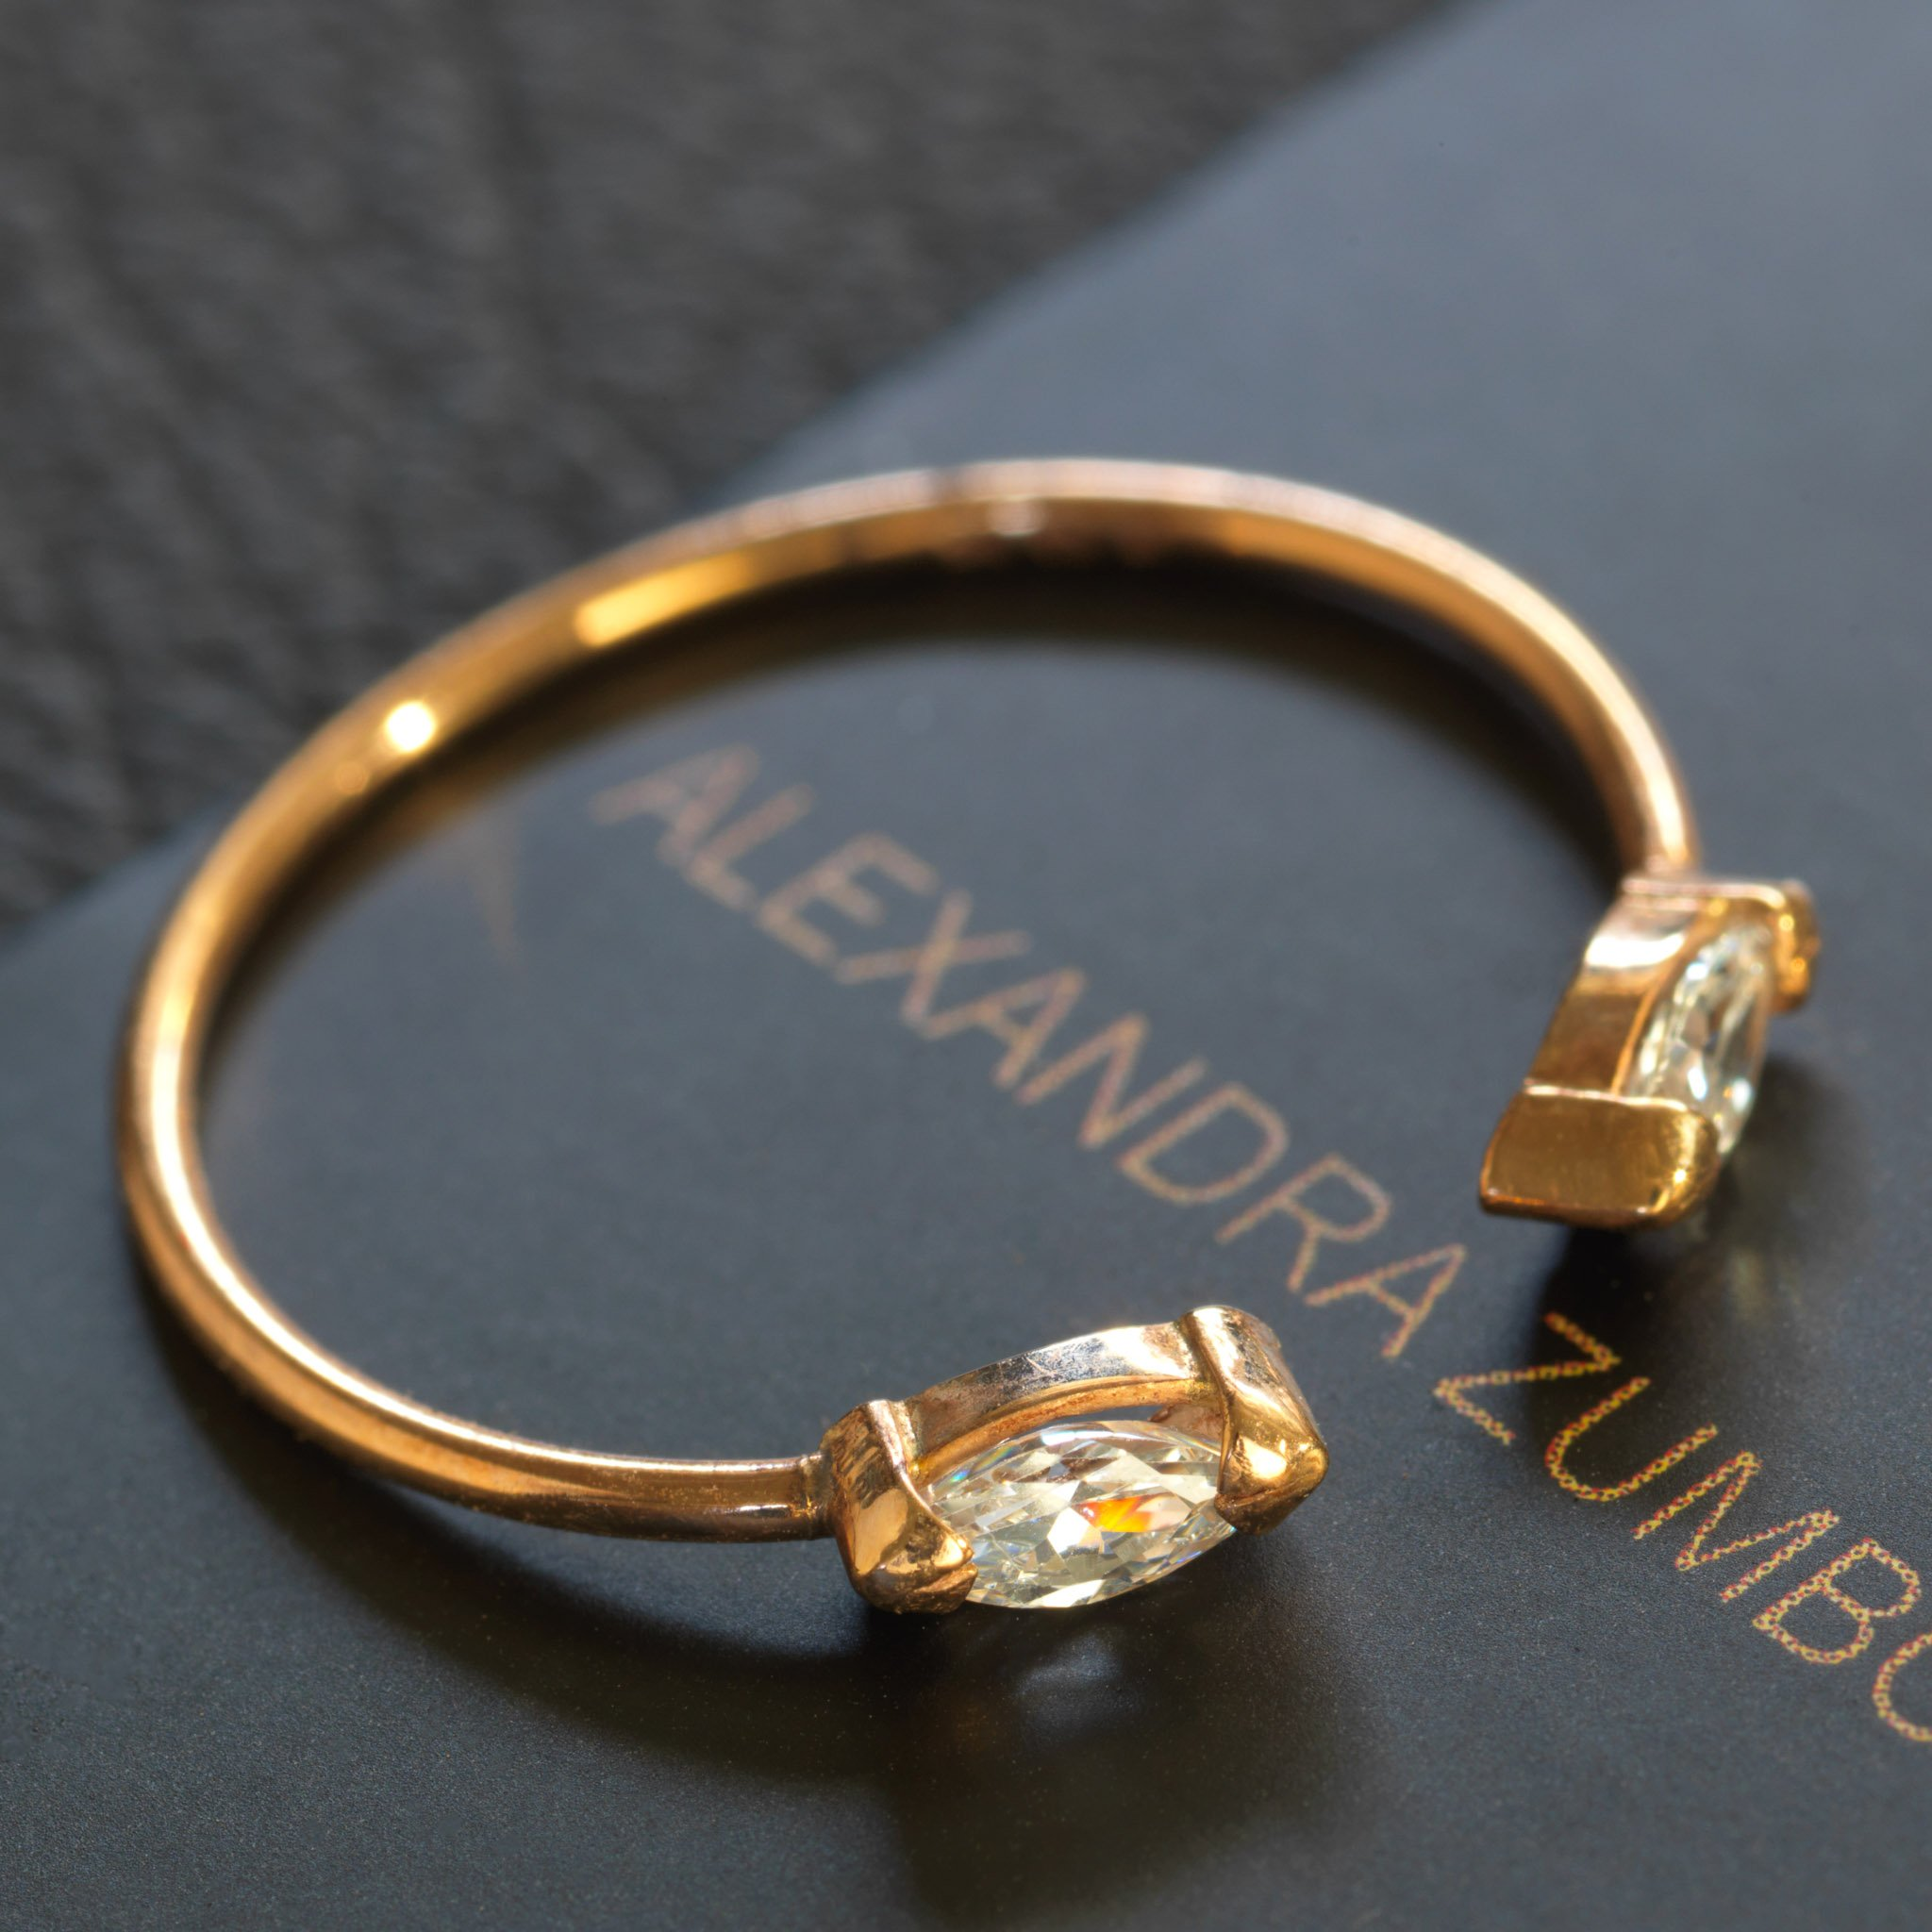 Gold ring with two jewels